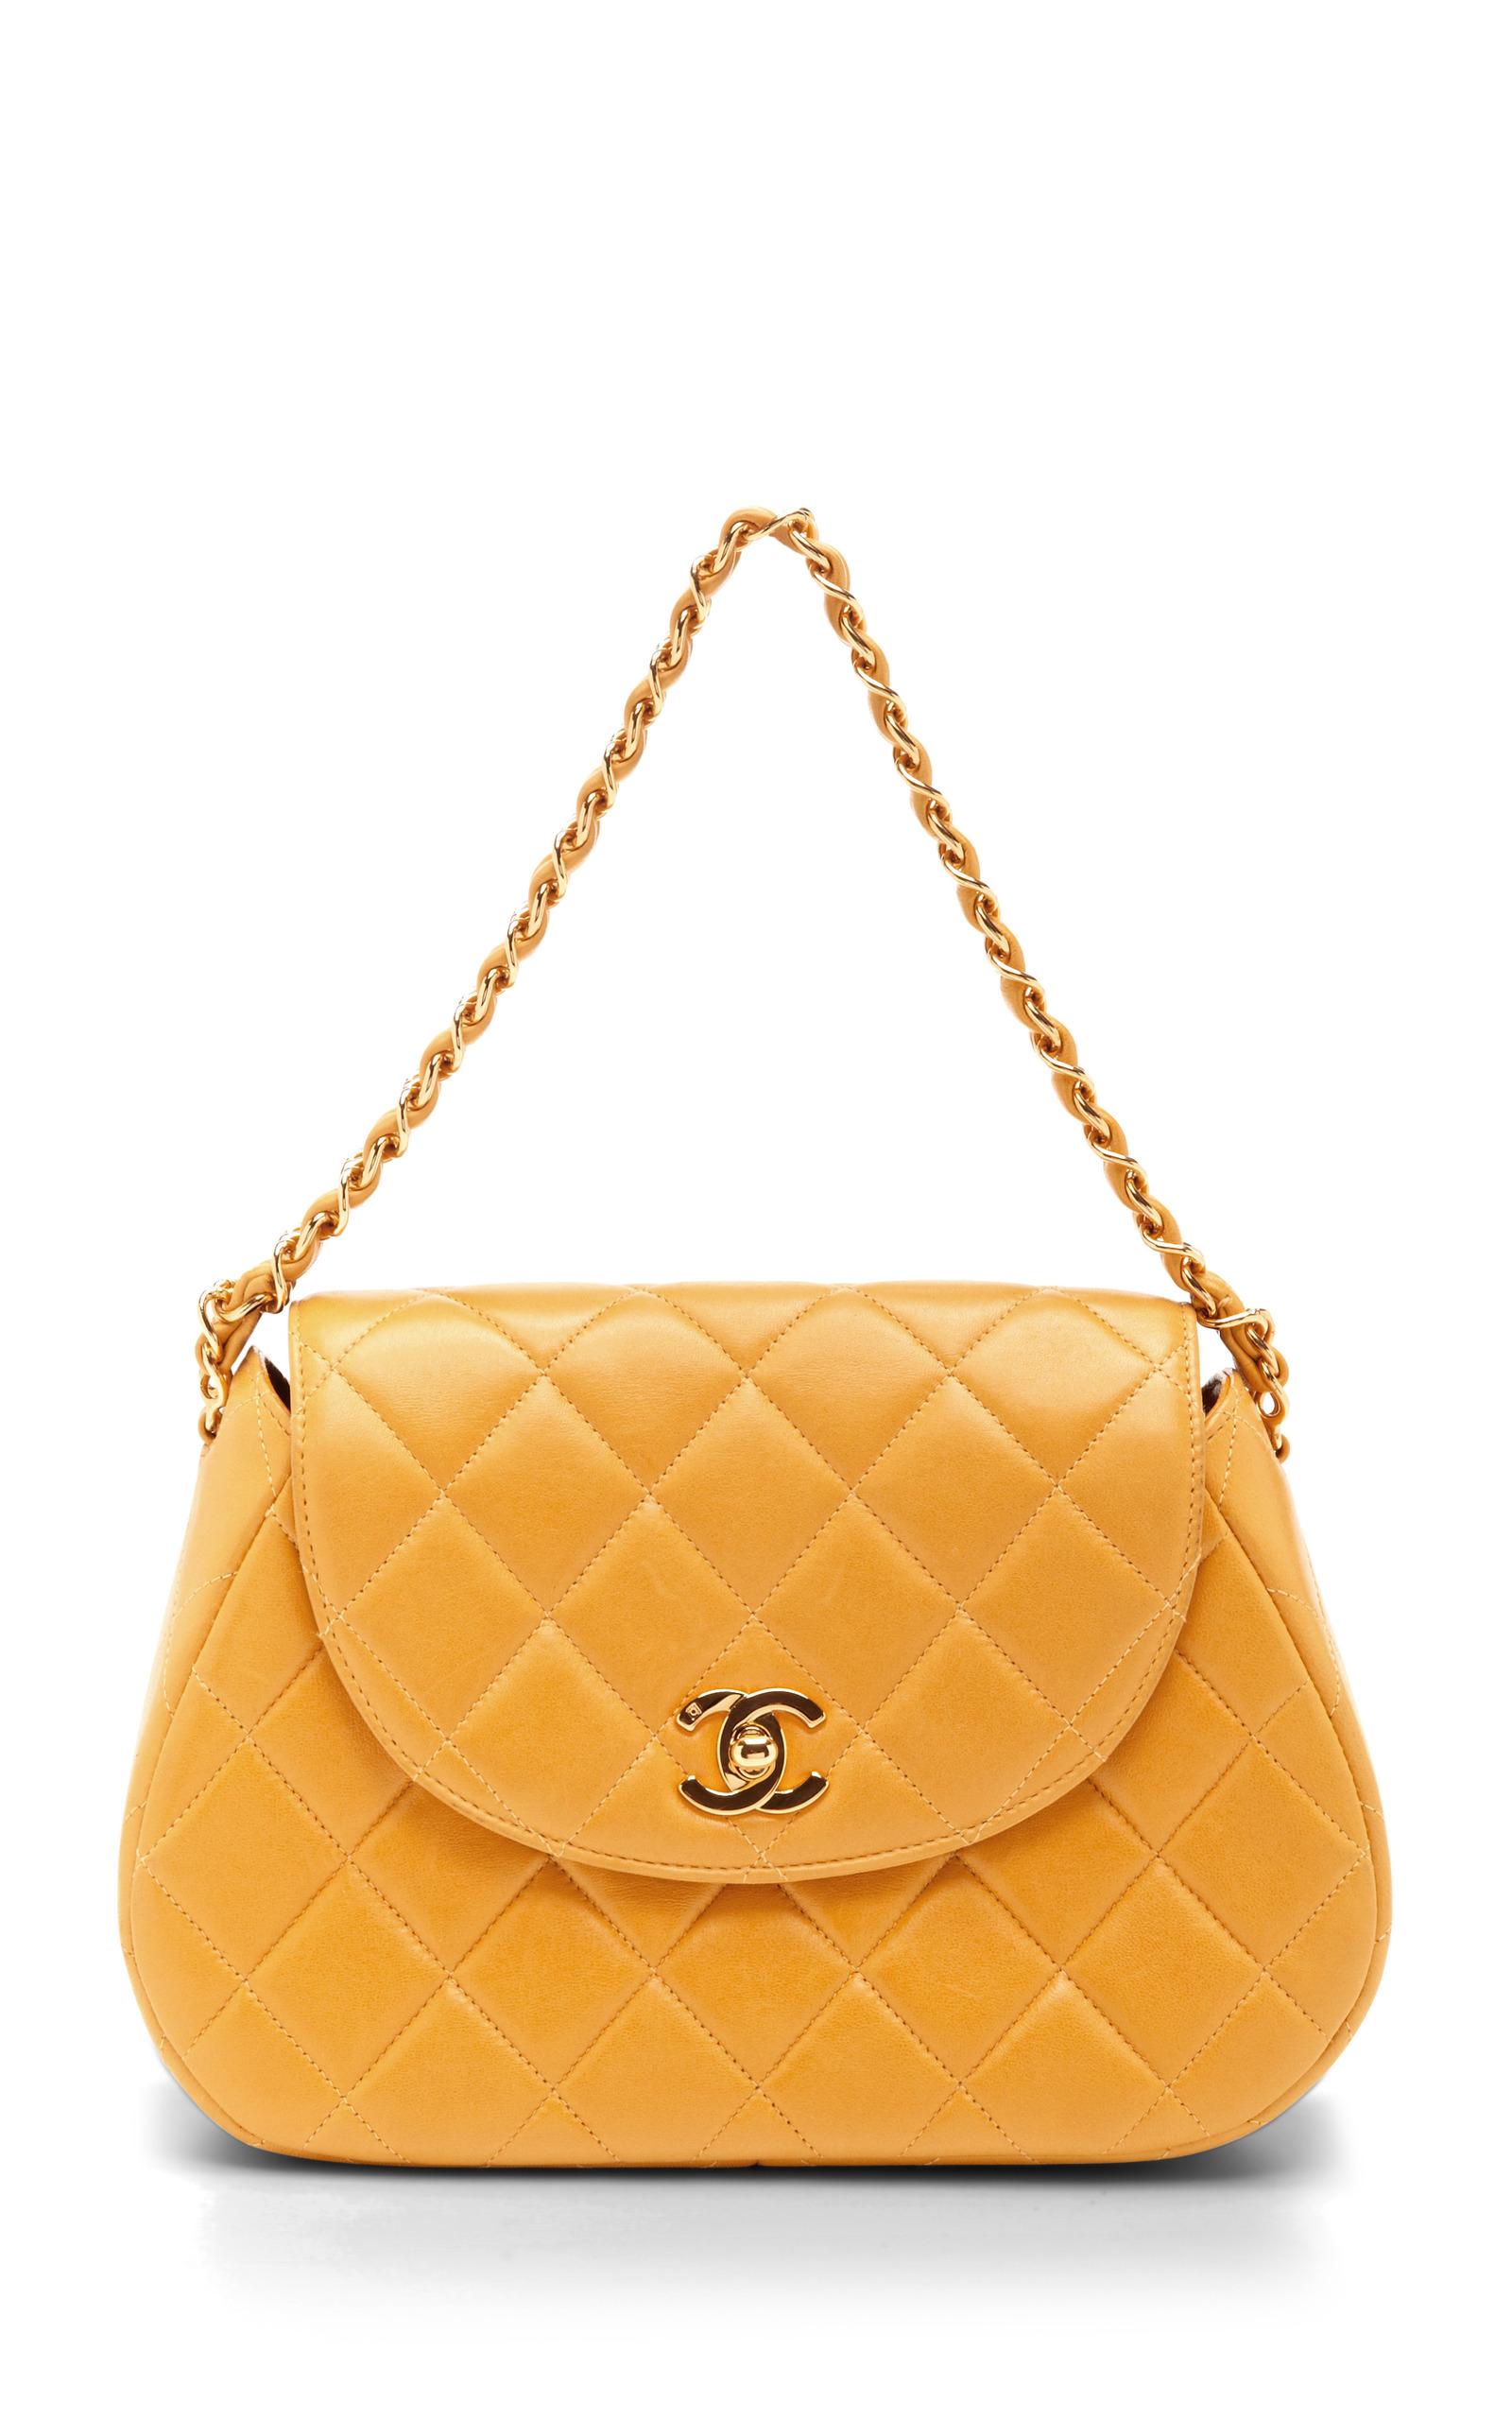 151e6c974ead85 Collectible JacketsVintage Chanel Yellow Quilted Round Flap Bag. CLOSE.  Loading